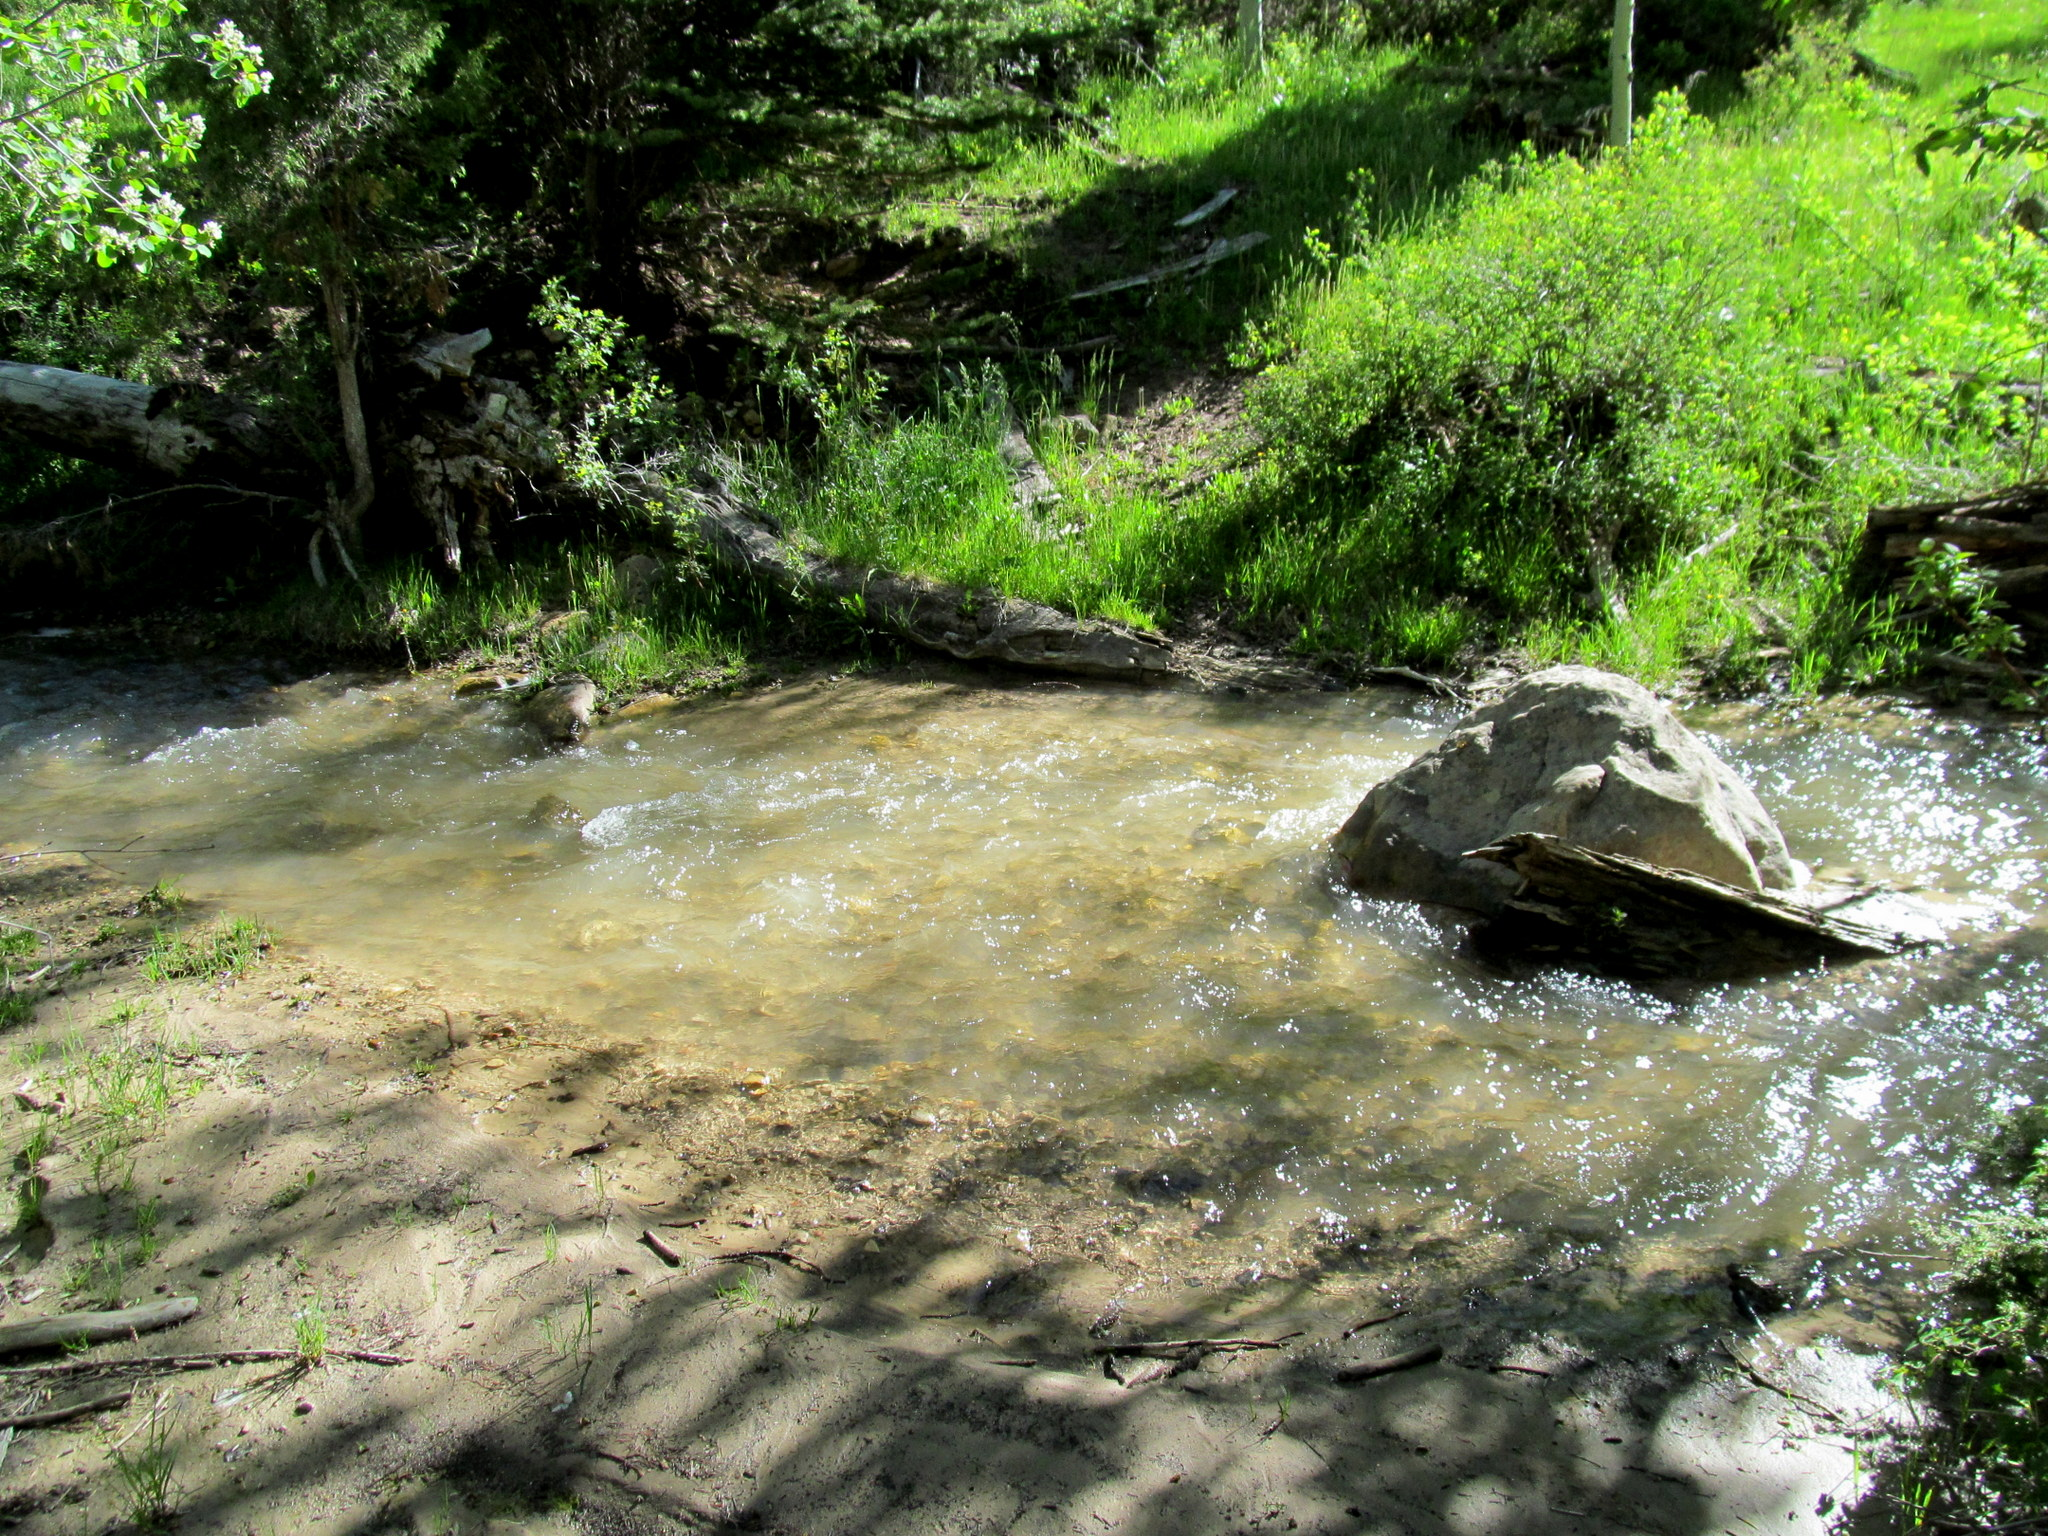 Photo: Second stream crossing